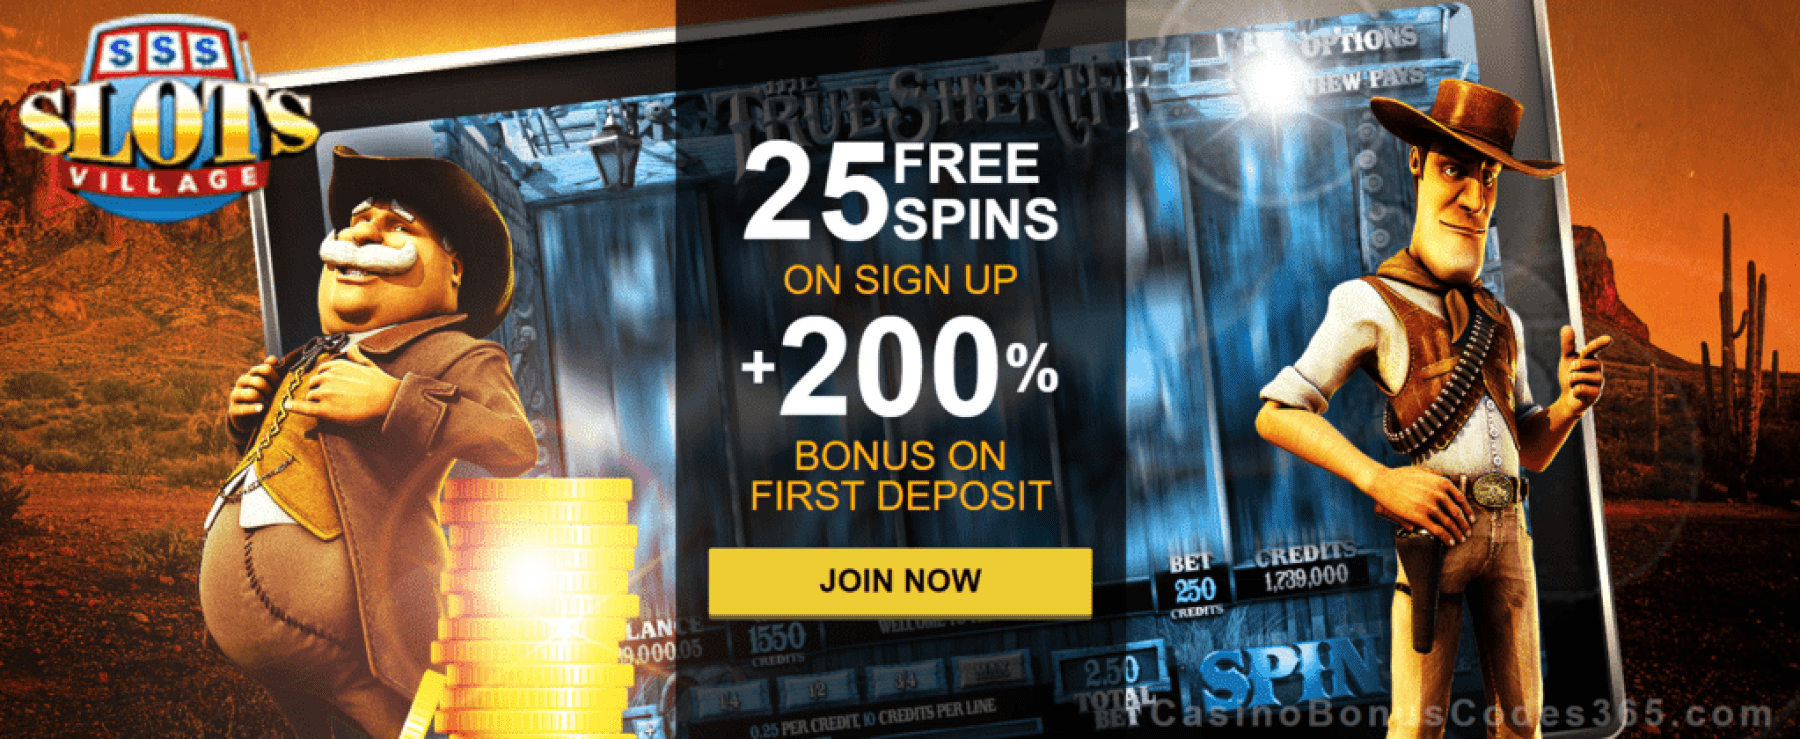 Slots Village 25 FREE Spins plus 200% Match Welcome Offer